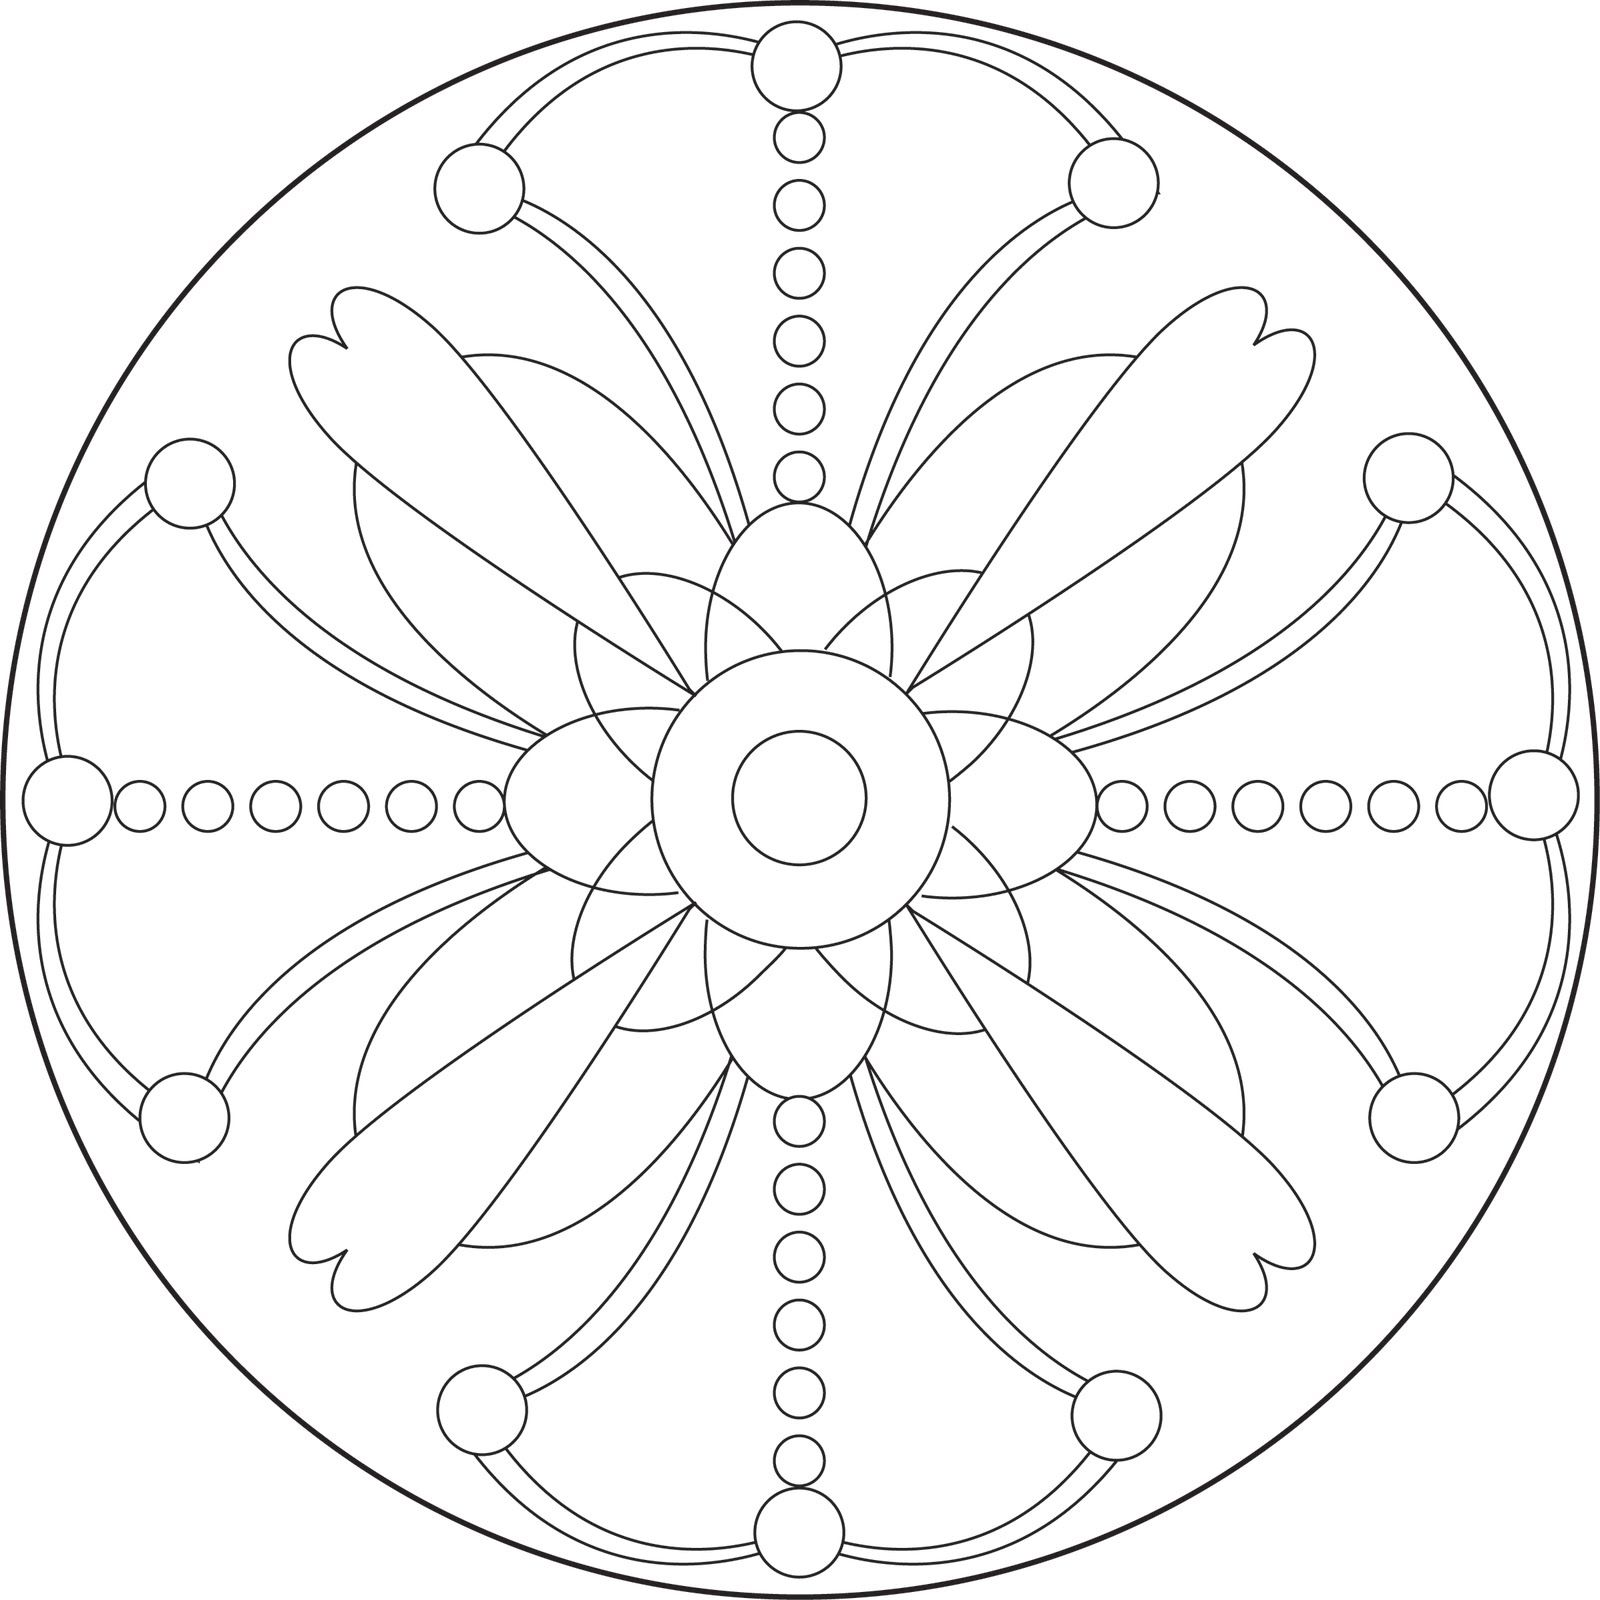 Coloring Pages Simple Coloring Pages To Print printable mandala patterns simple coloring pages complex colouring